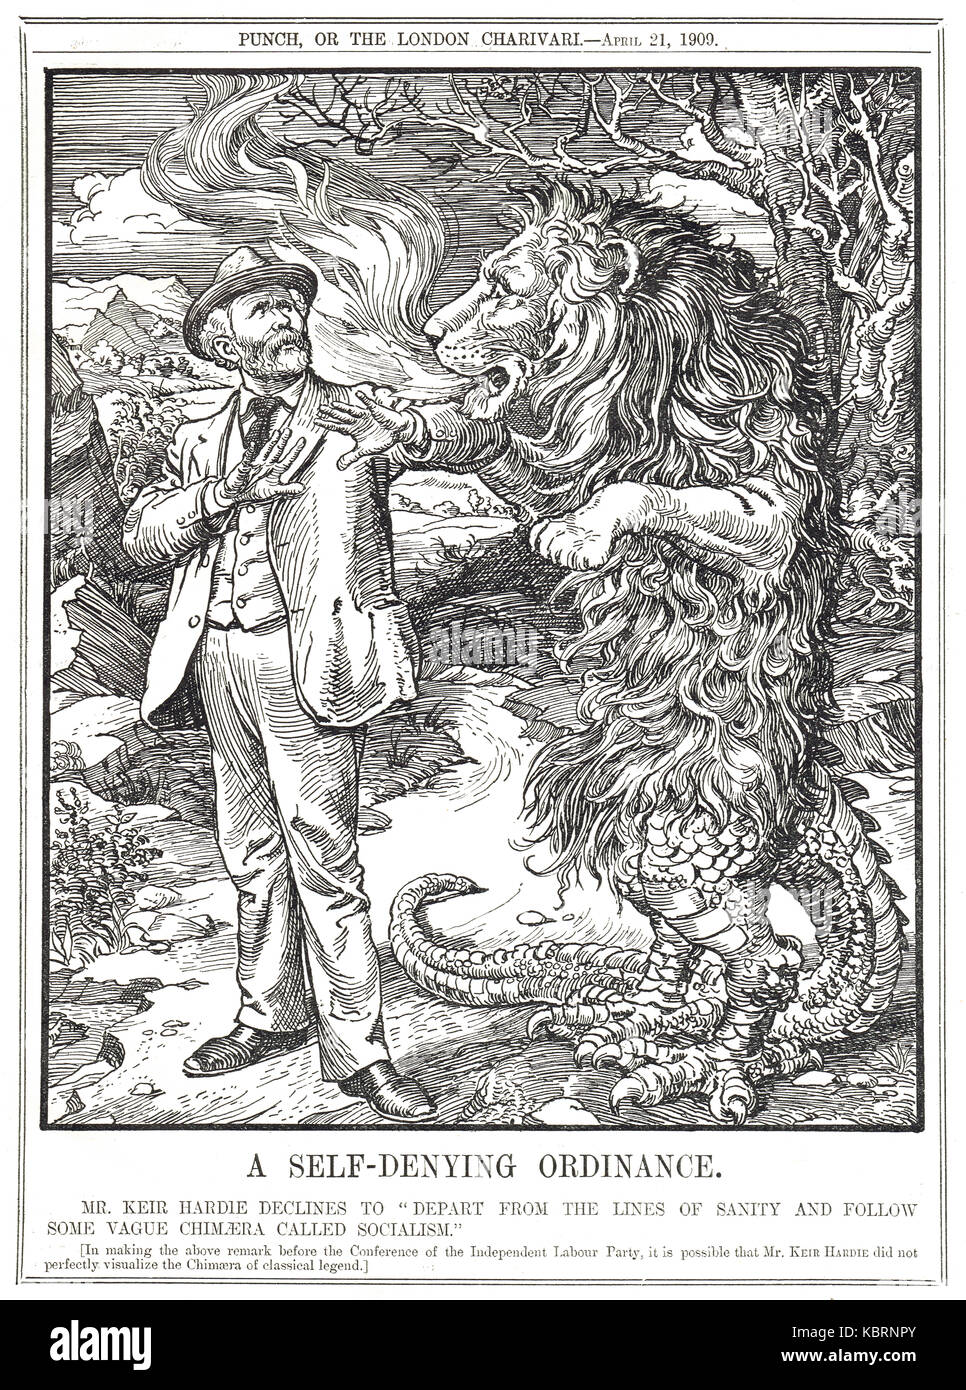 Keir Hardie declining the vague Chimera of Socialism, Punch 1909 - Stock Image